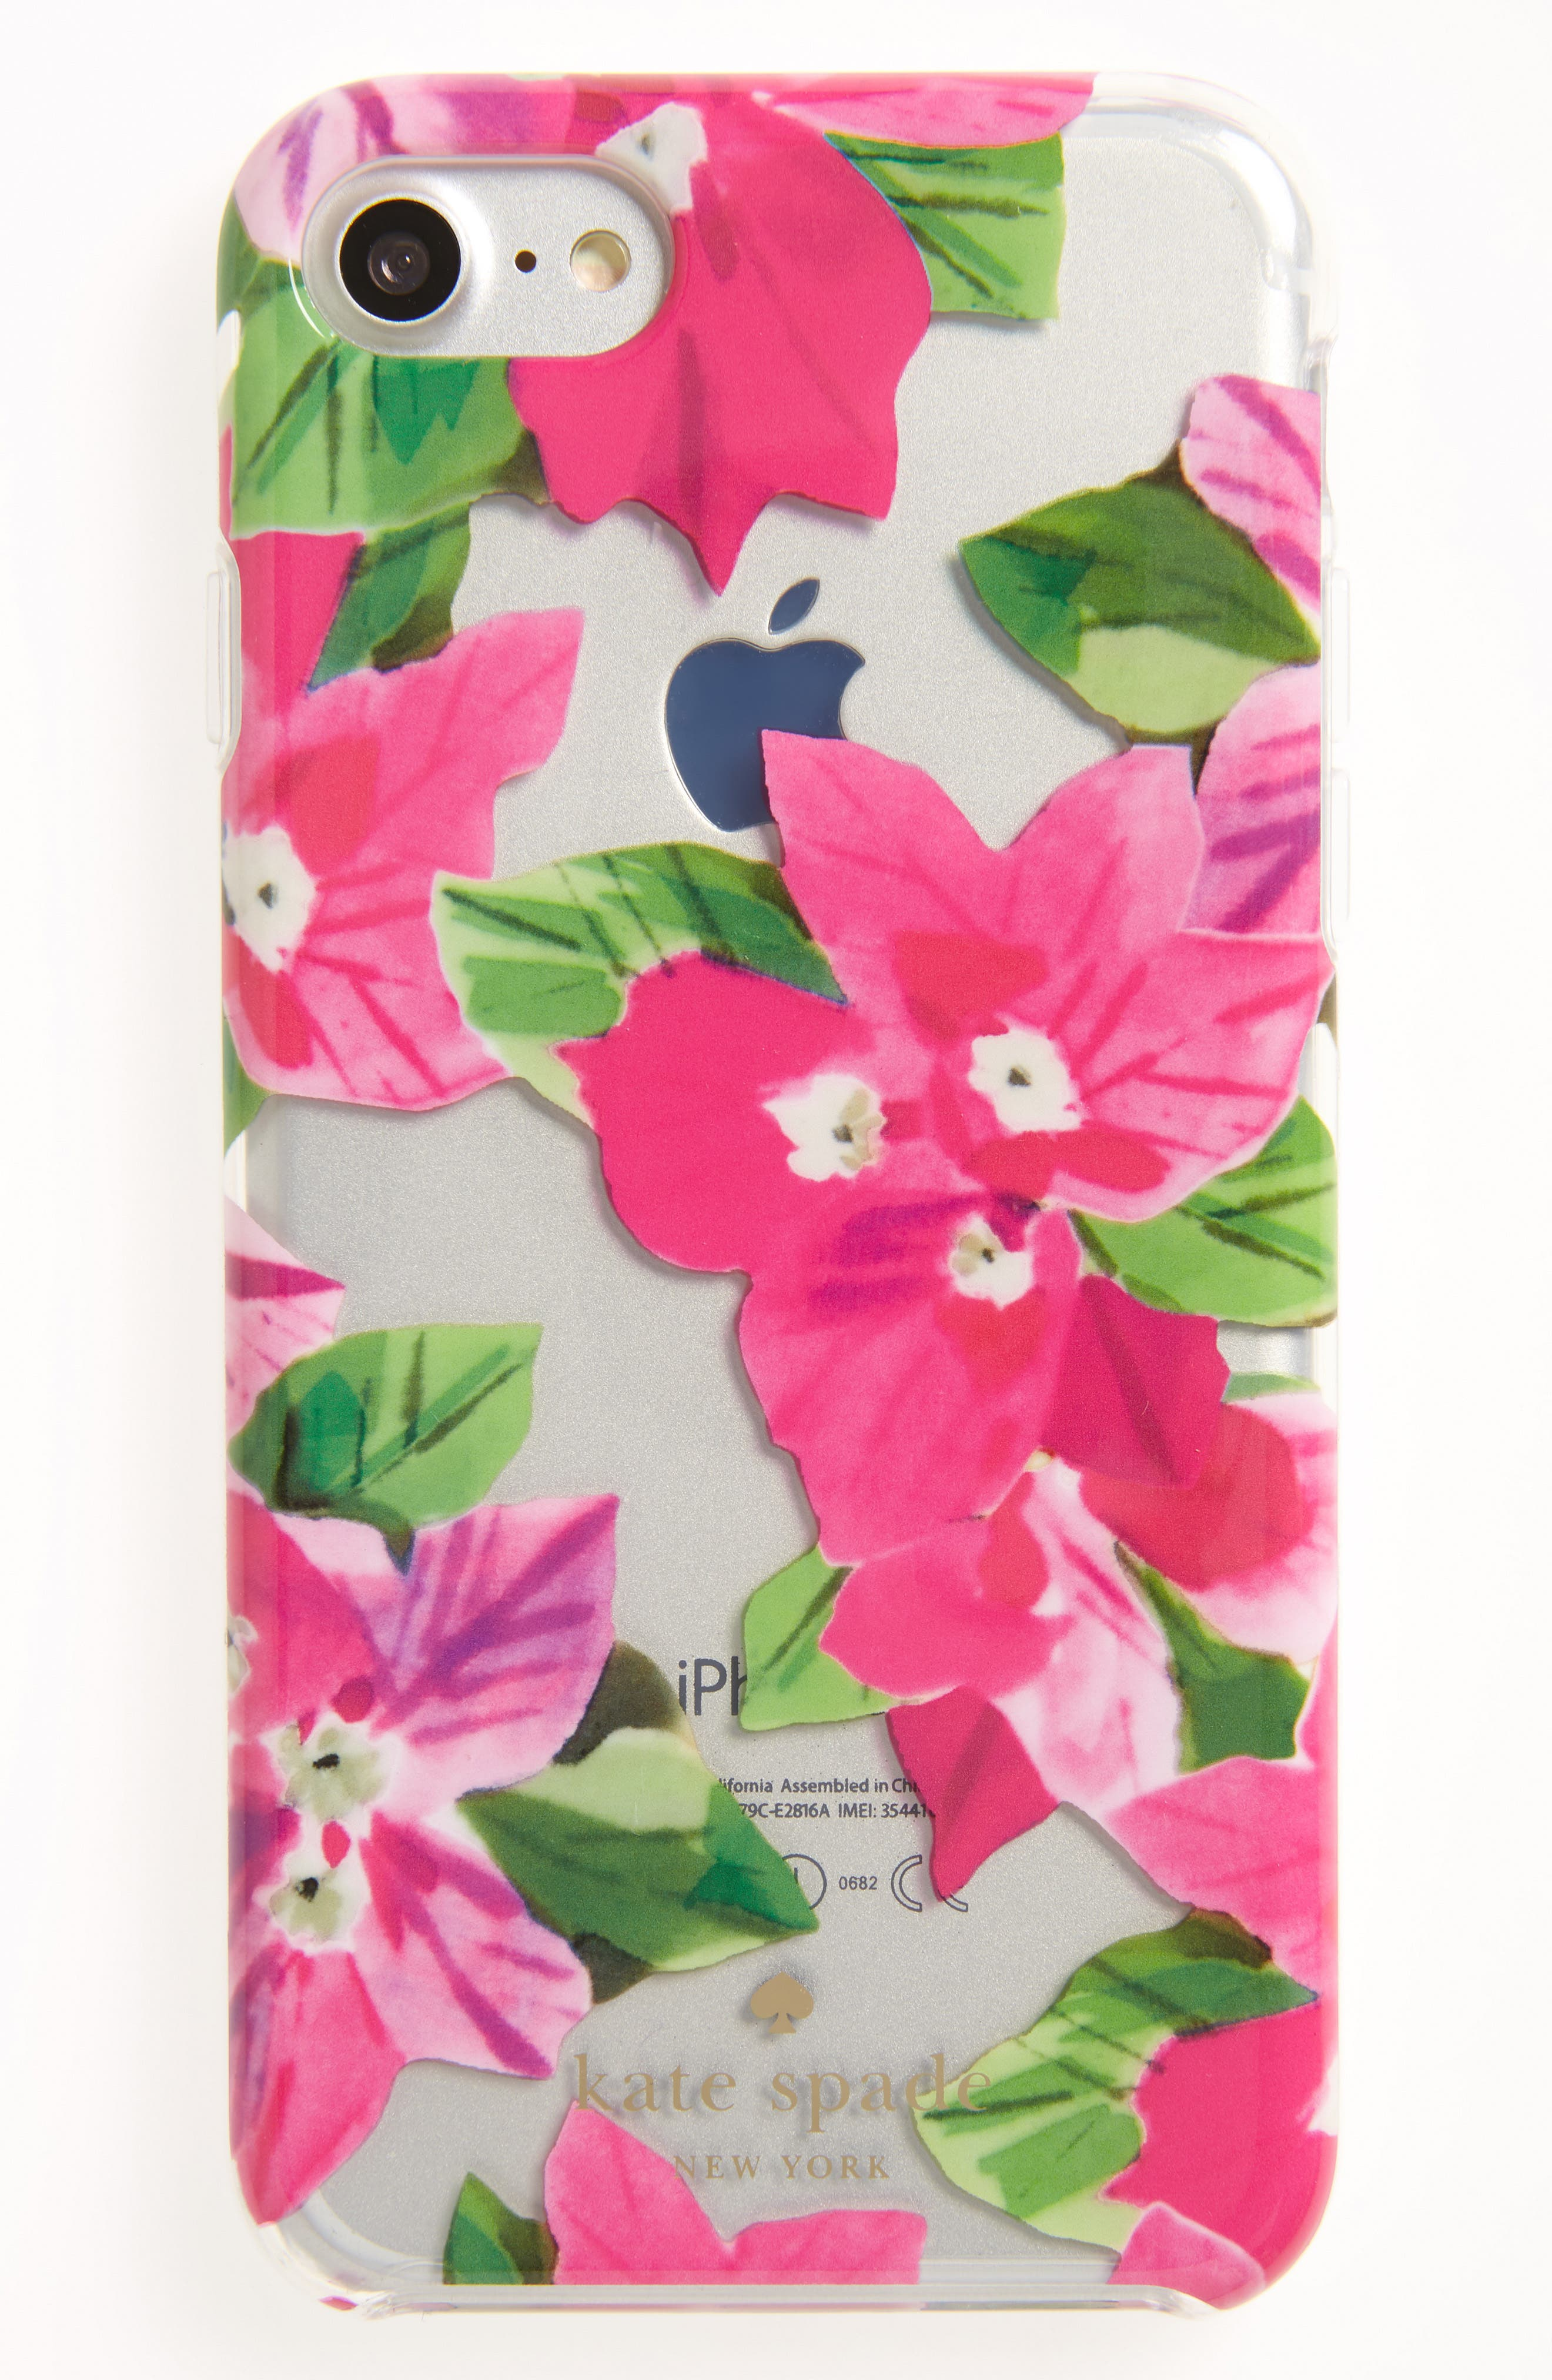 Alternate Image 1 Selected - kate spade new york bougainvillea iPhone 7 case